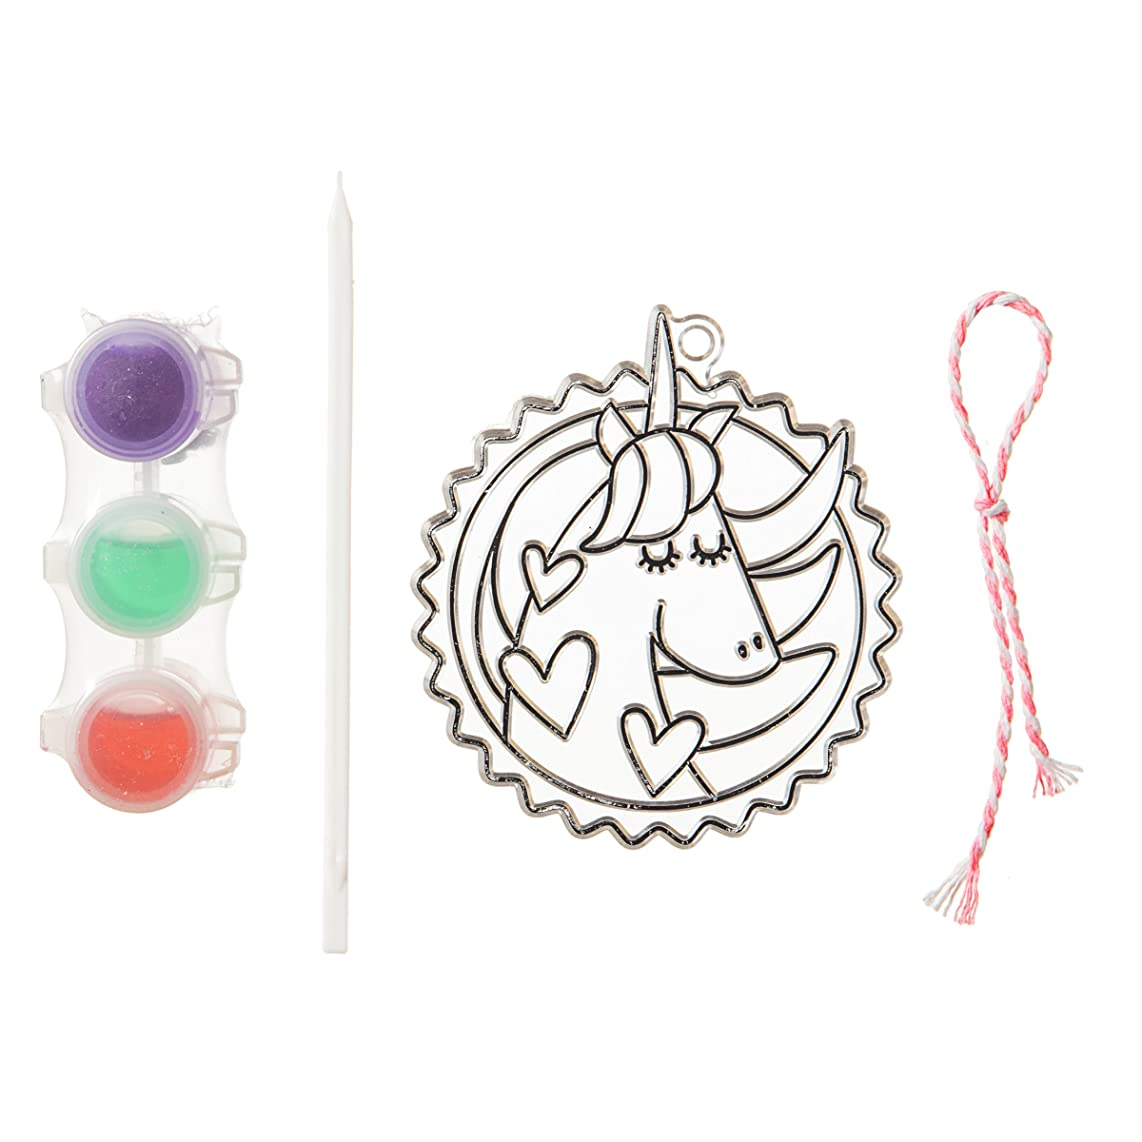 Darice 30041833 Unicorn Suncatcher, Clear/Transparent